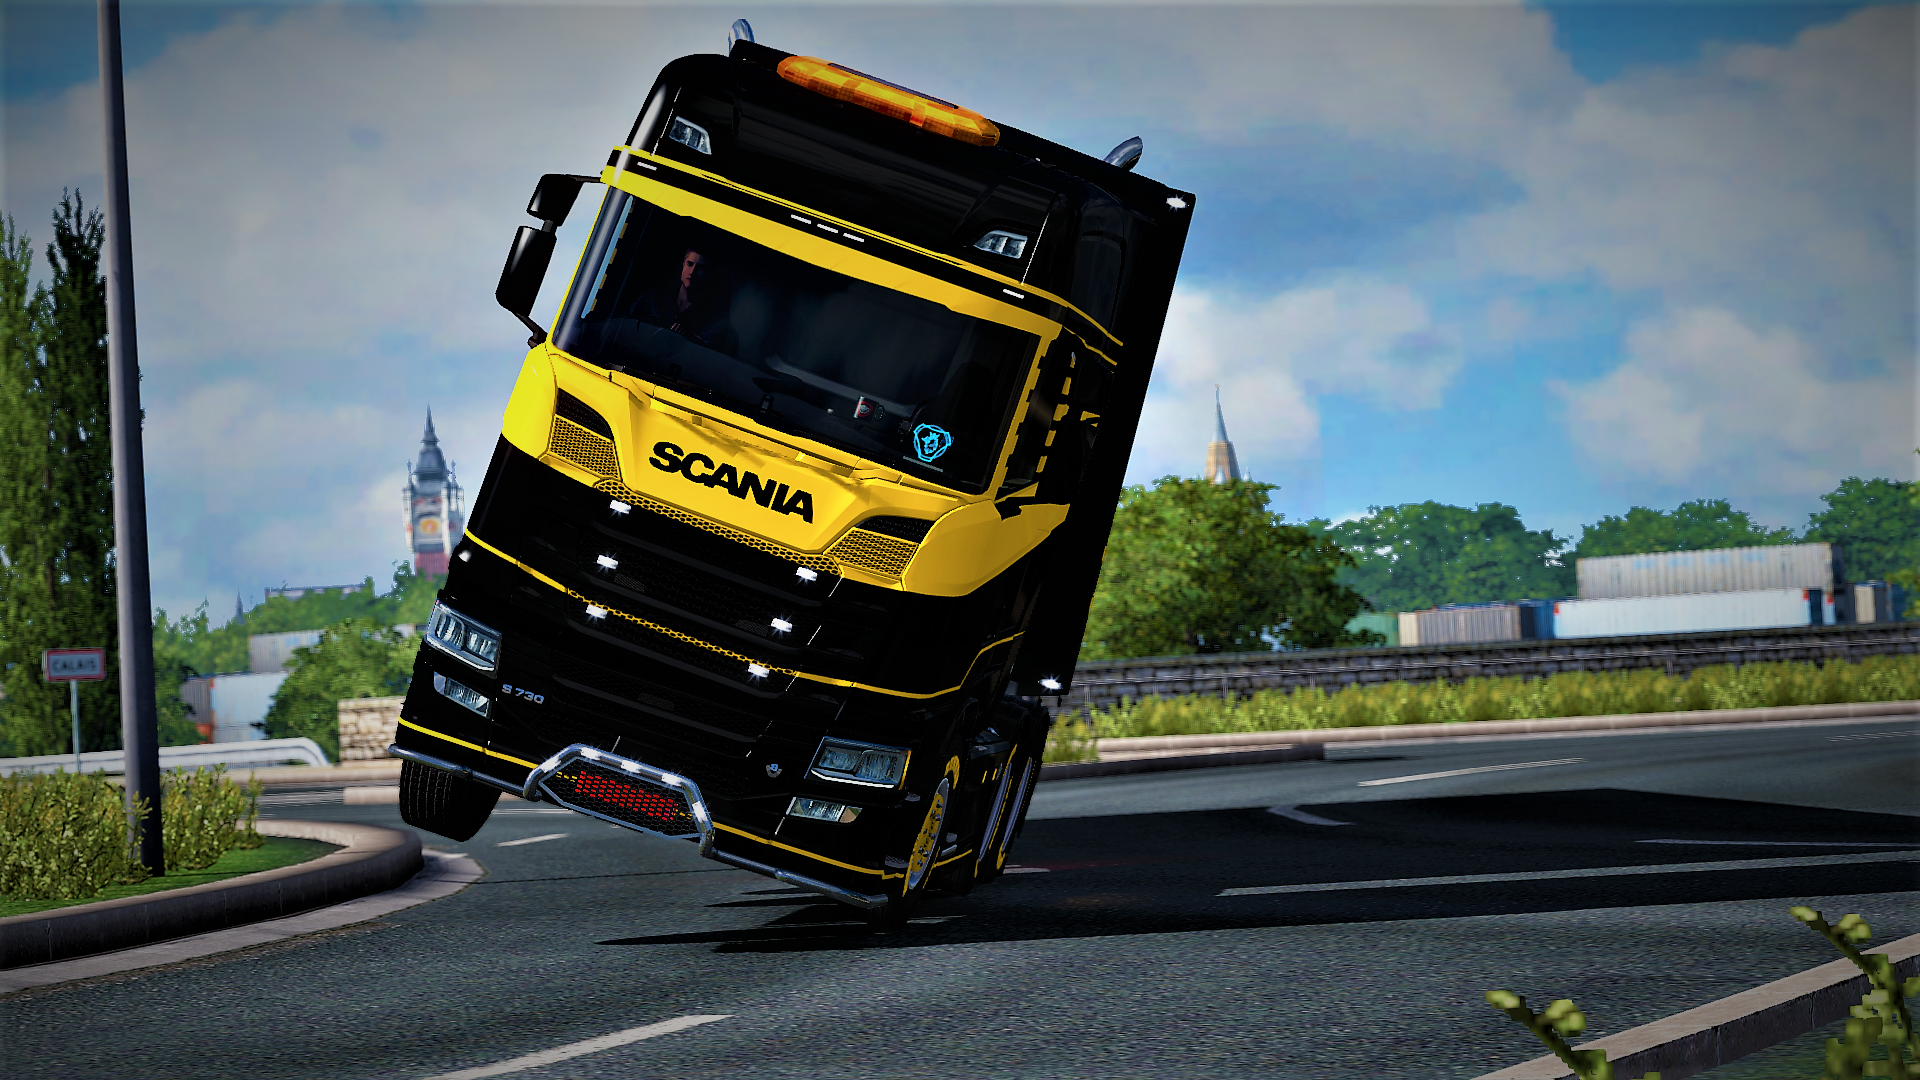 ets2_20190714_191641_00.png